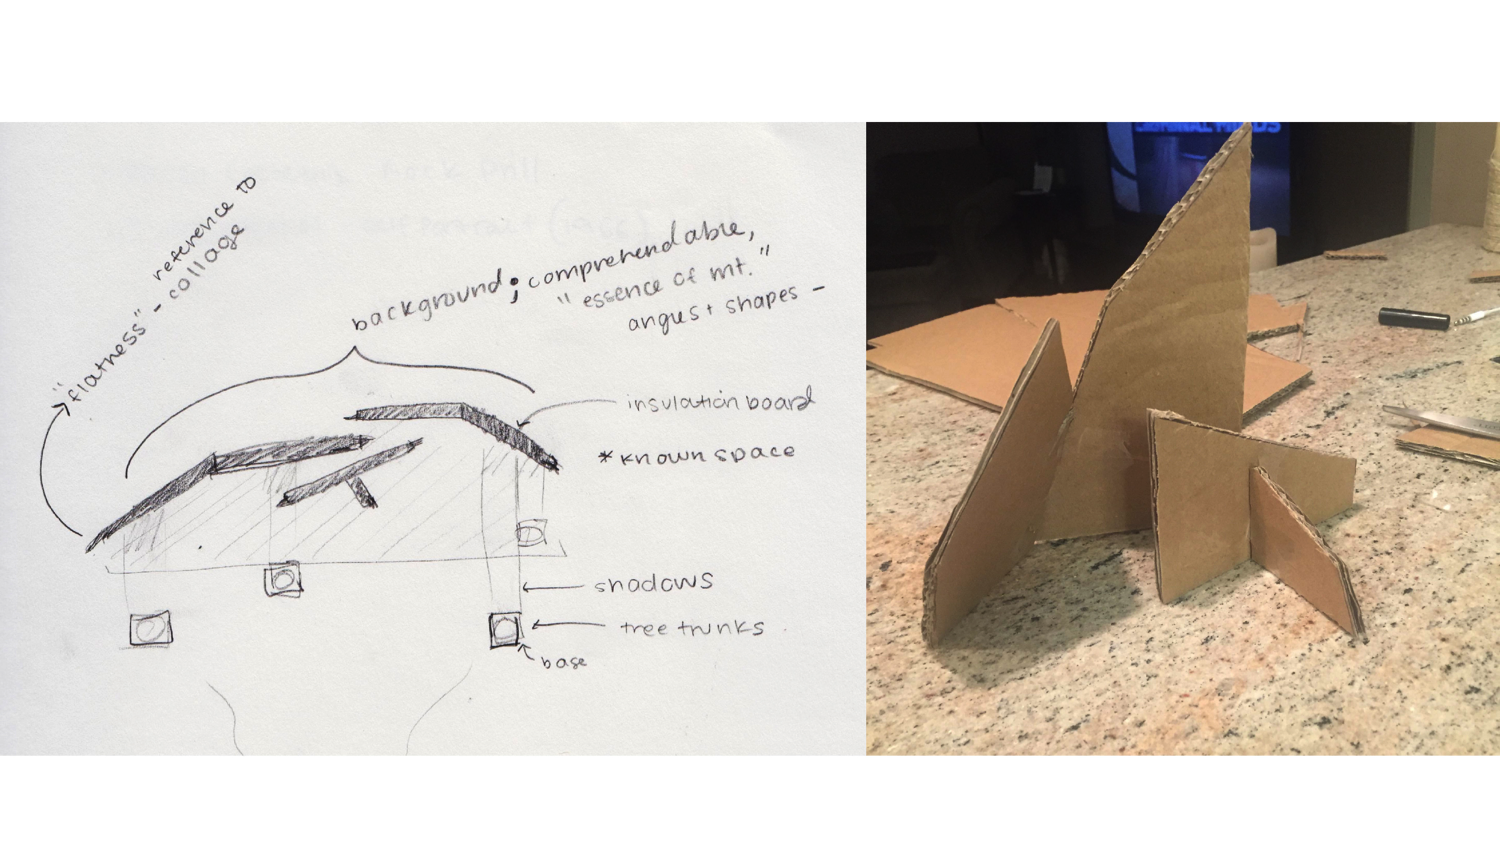 Sketch and model of installation consturction